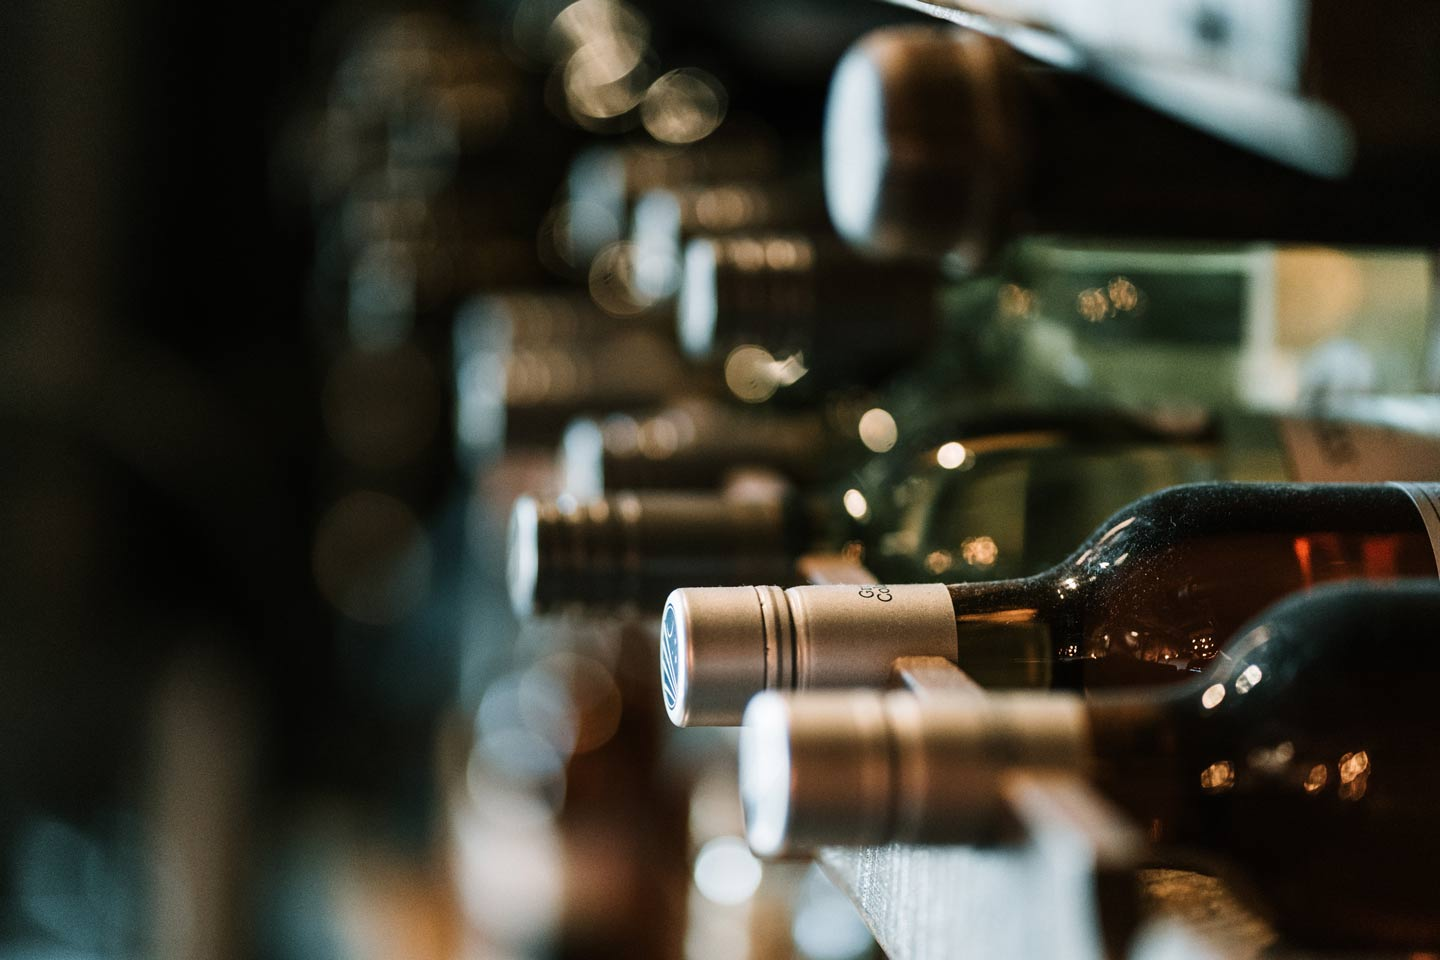 Wine Websites: Keys to Grow the Value of Your Winery Online